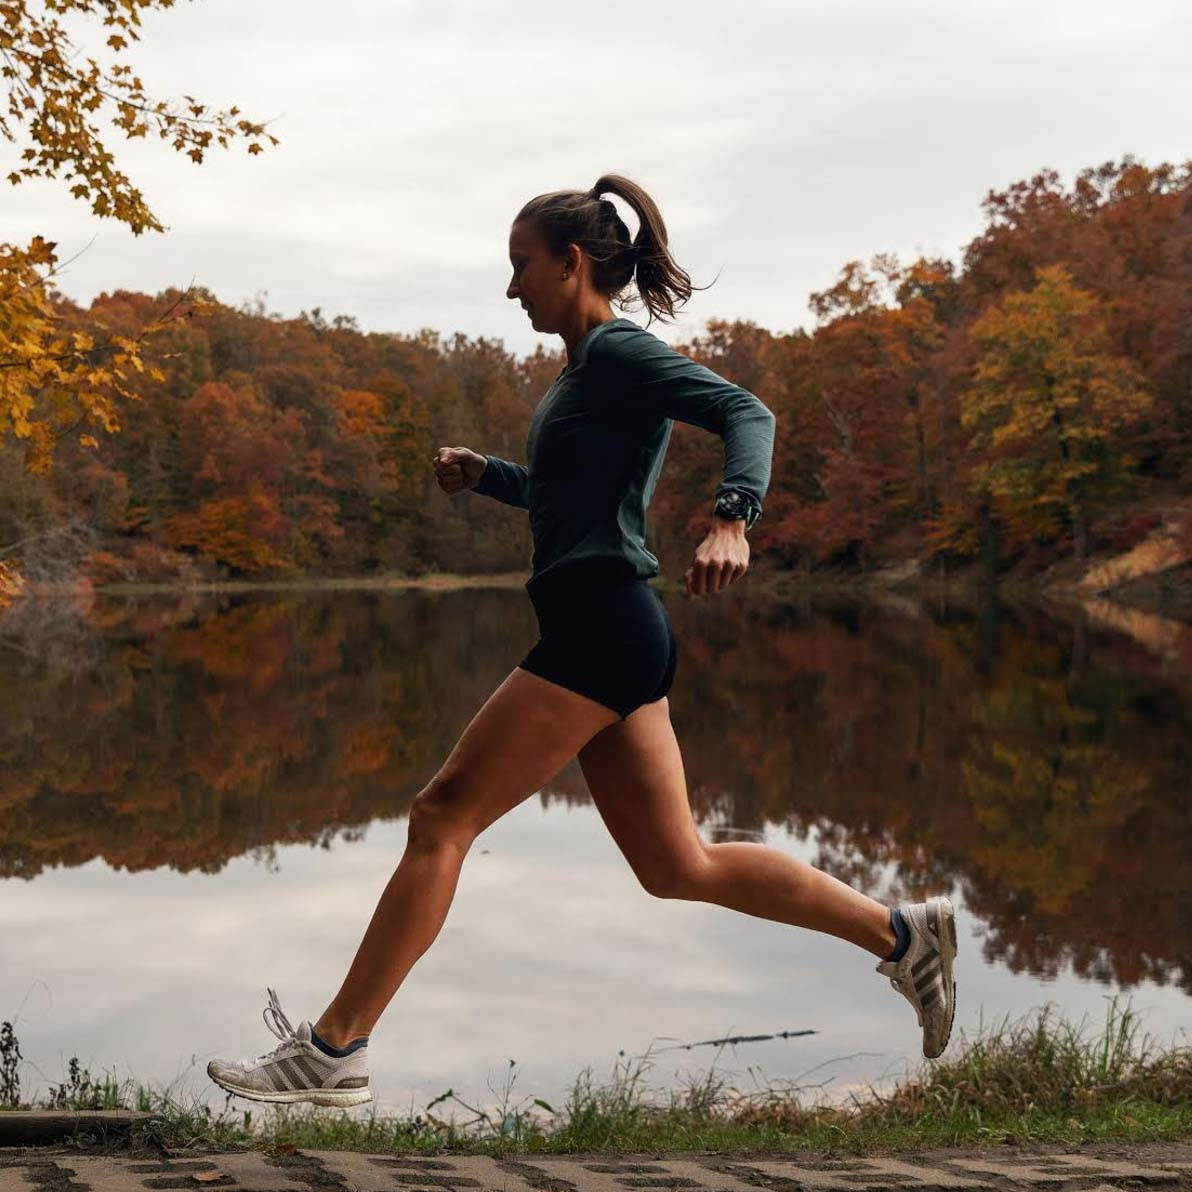 Olivia Ballew runs past a lake as she trains for a marathon. Beautiful fall foliage in the background.